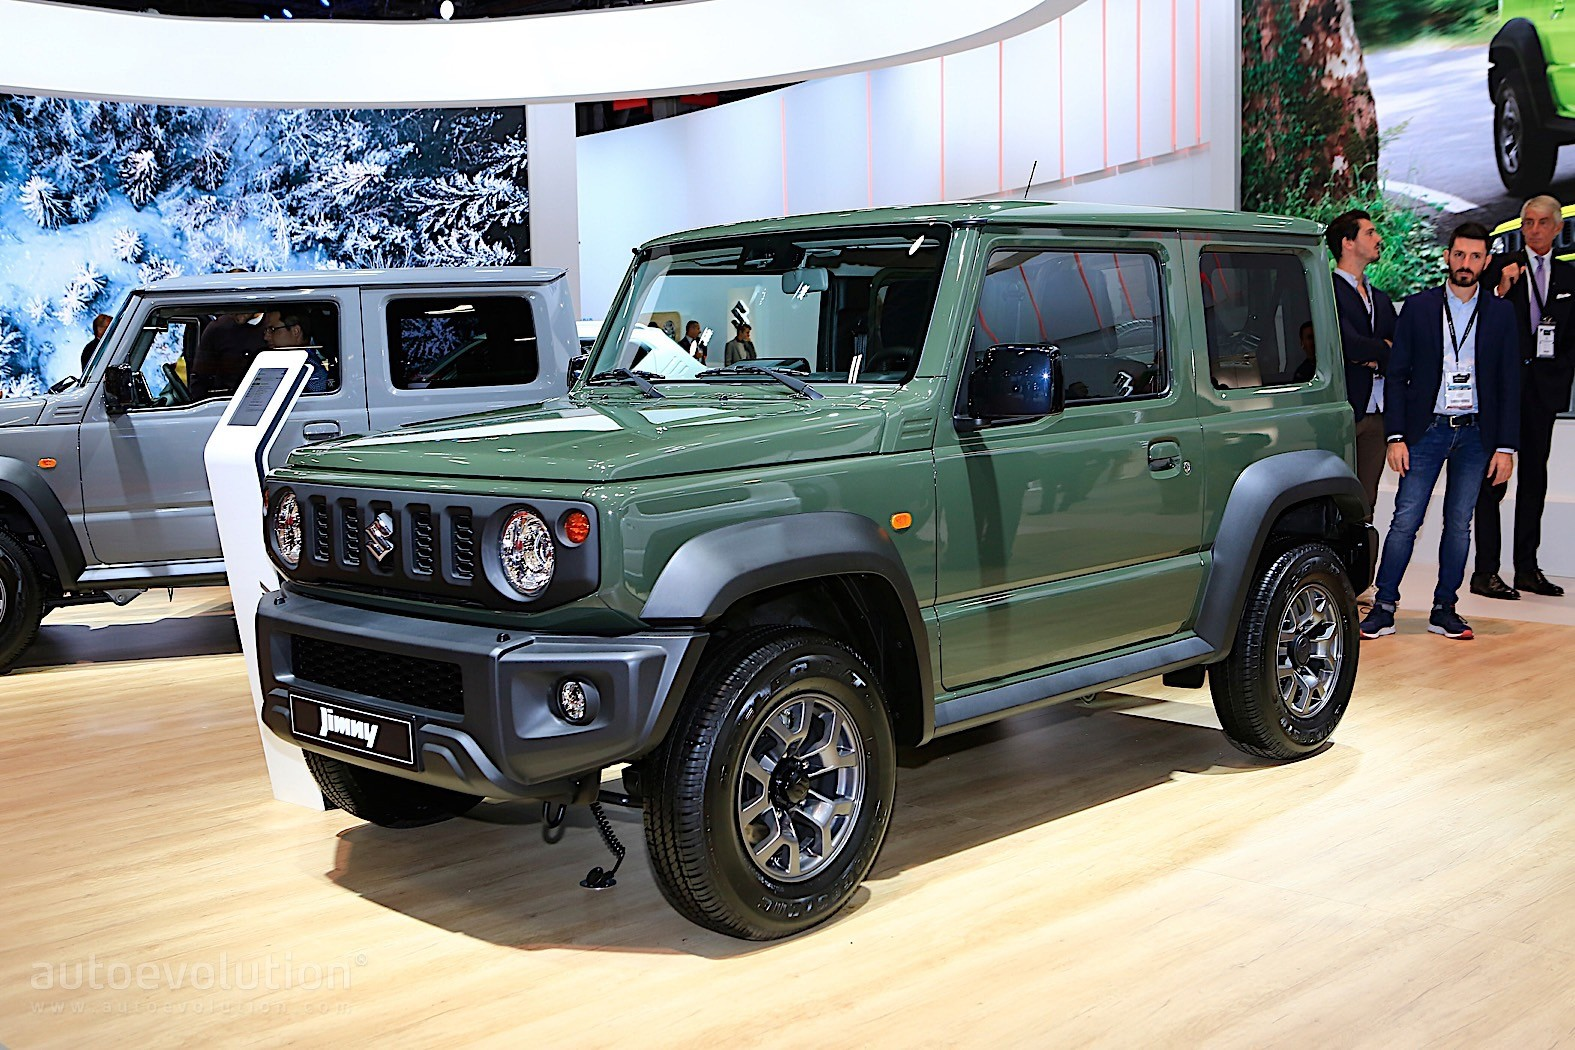 2019 suzuki jimny is out for suv blood in paris. Black Bedroom Furniture Sets. Home Design Ideas